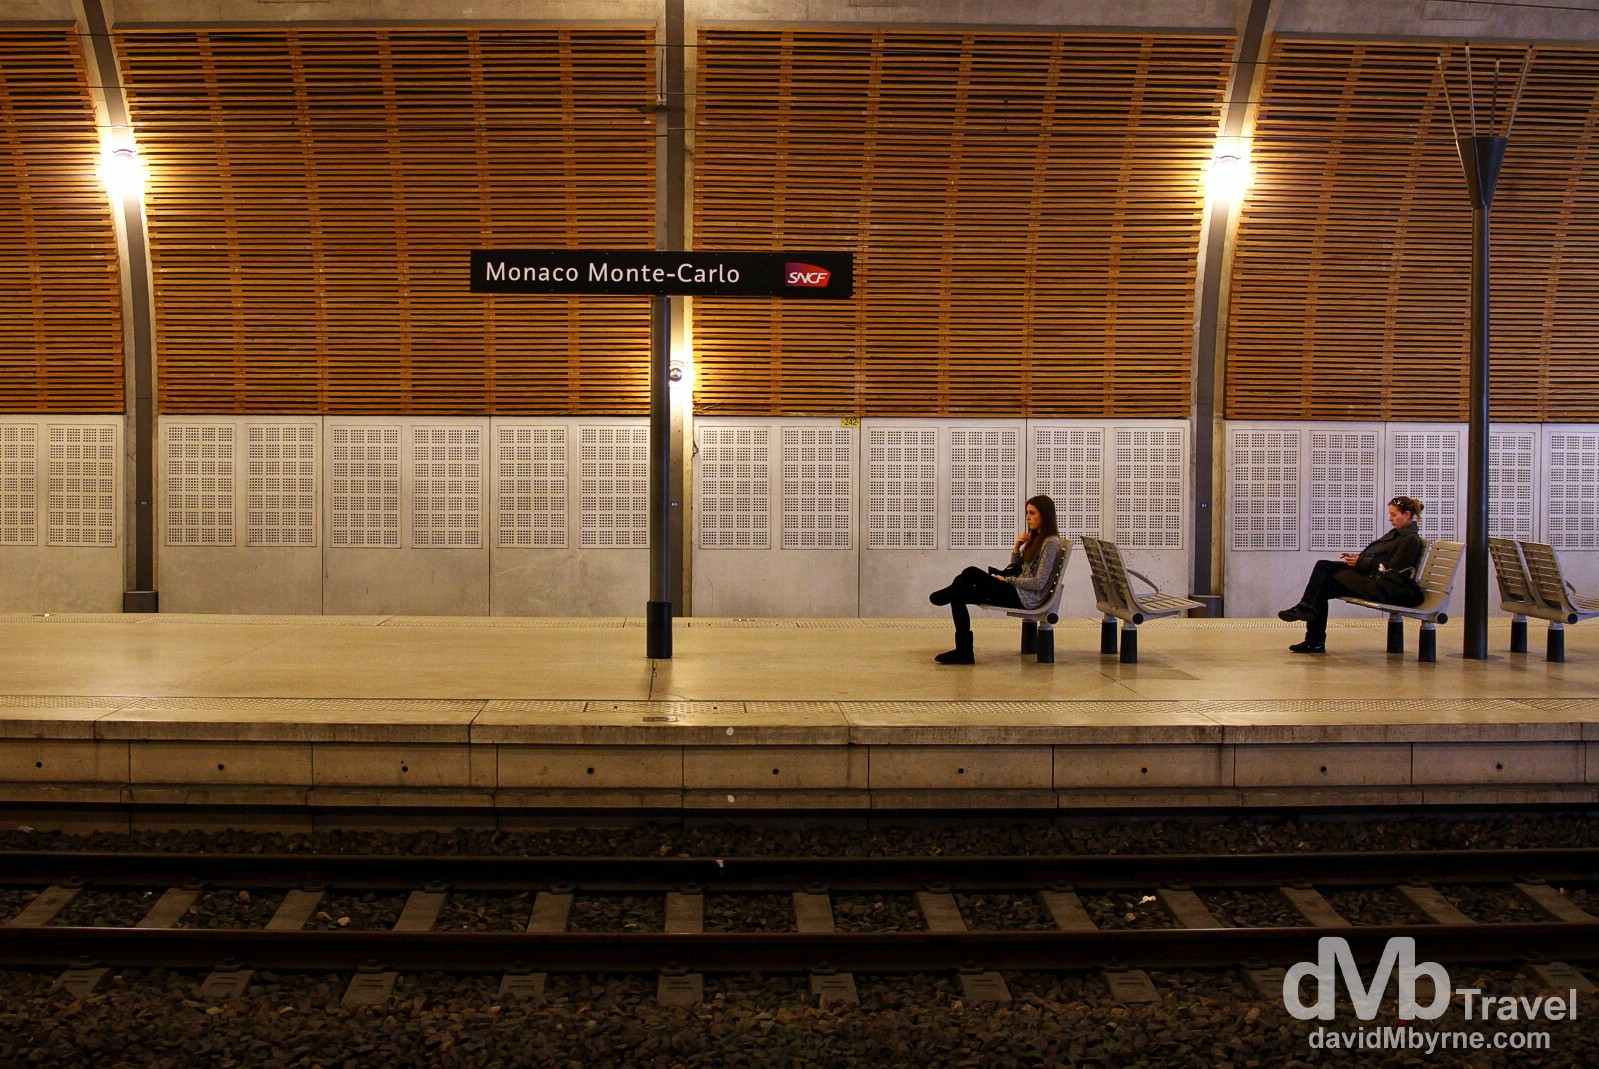 On the platform of the subterranean train station platform in Monaco. March 14th, 2014.